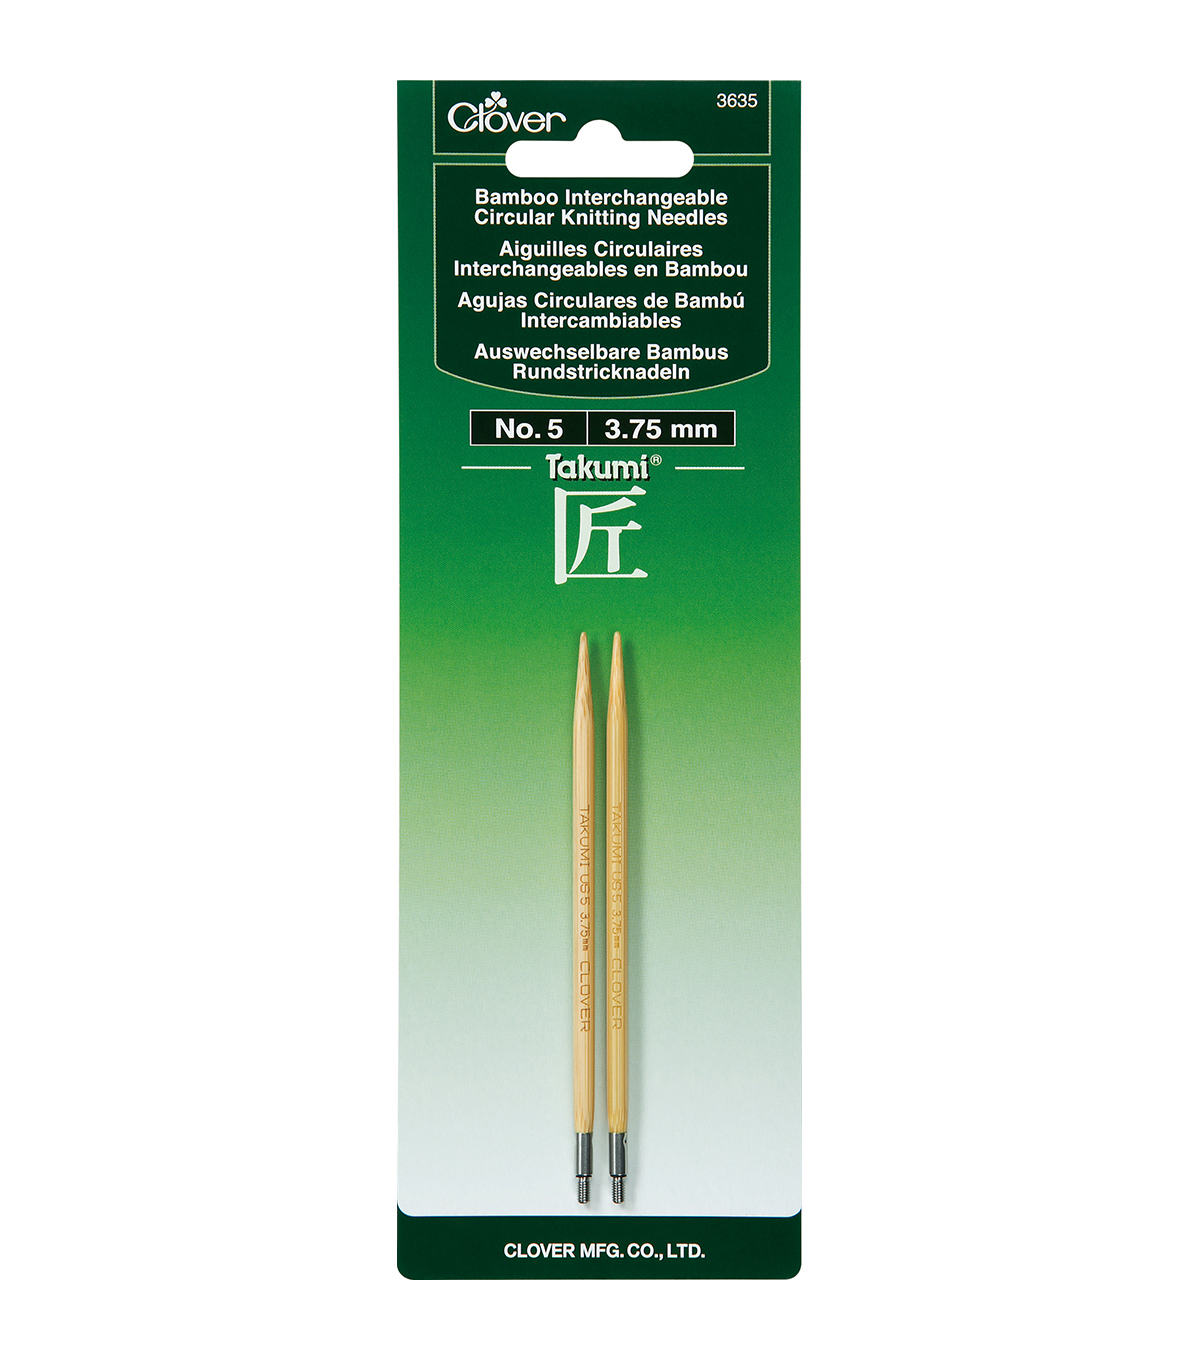 Clover Takumi Interchangeable Circular Knitting Needles Size 5/3.75mm